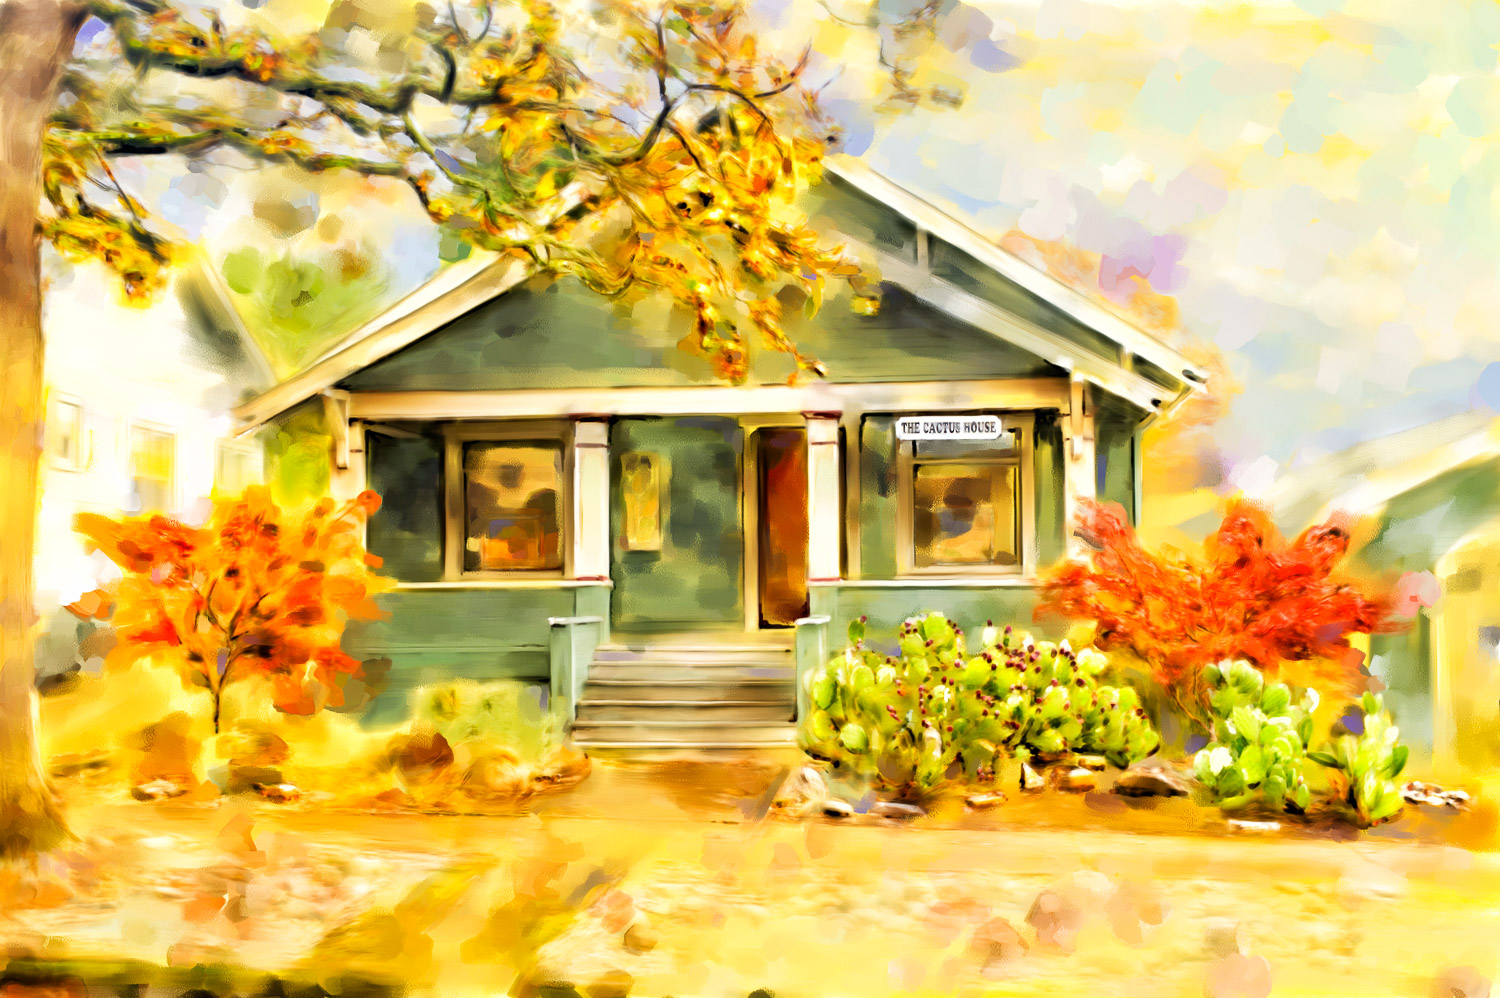 Stefani Fine Art is located at The Cactus House in Salem Oregon